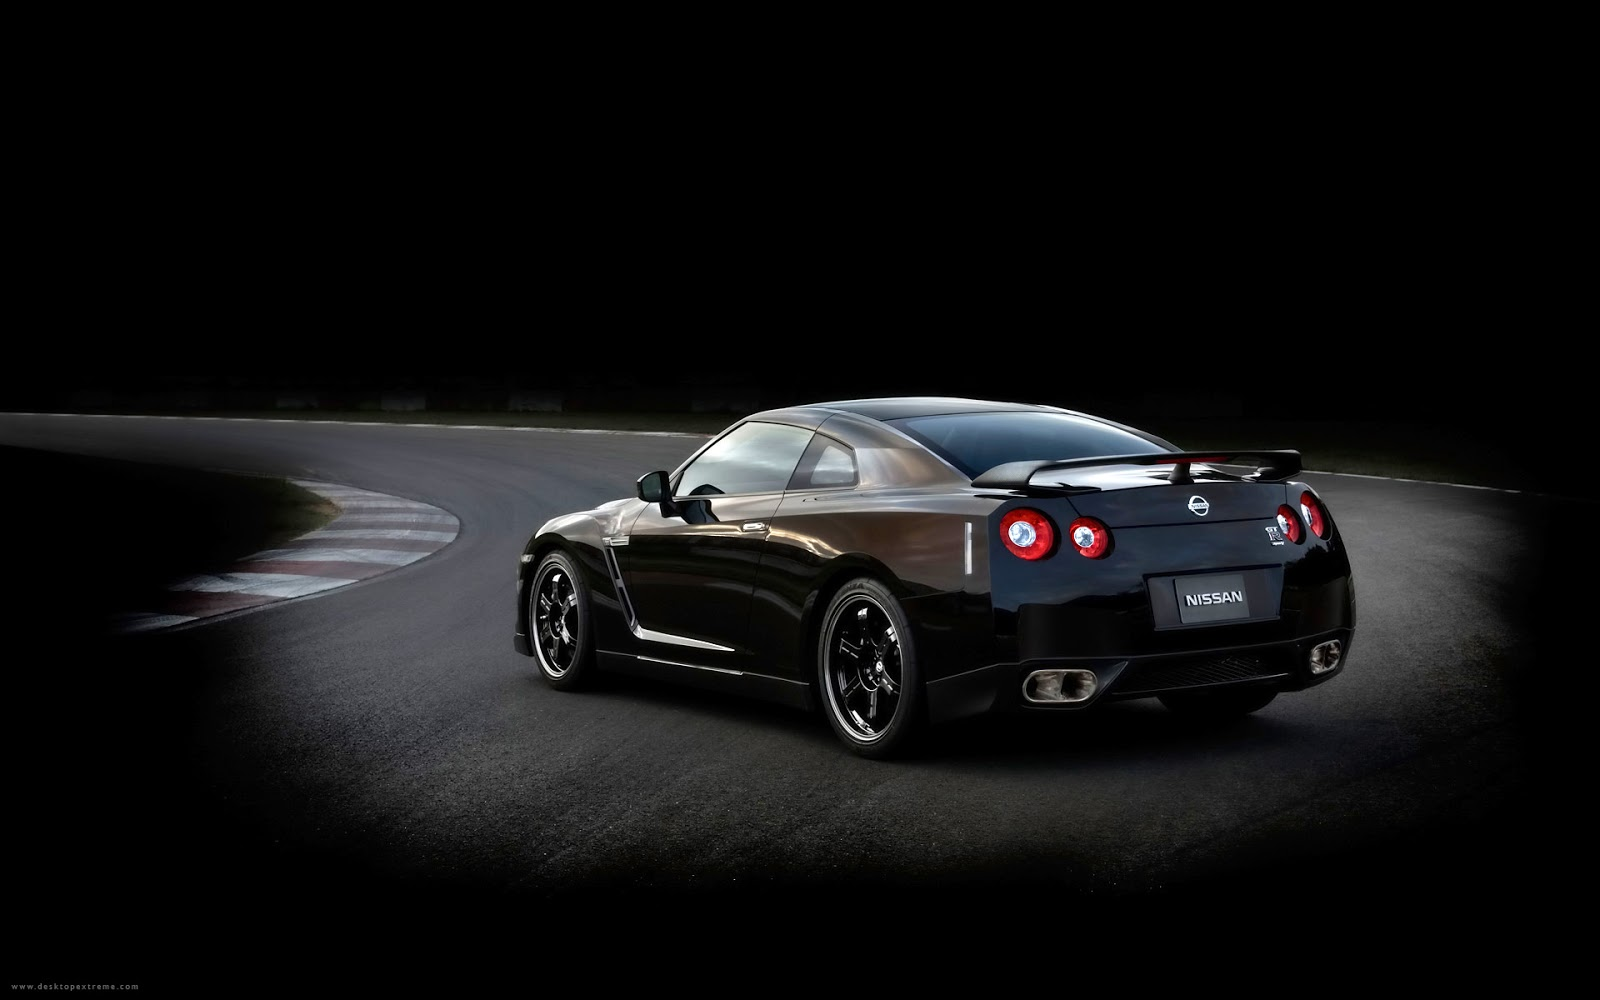 ... wallpapers cars nissan wallpapers pictures wallpapers images